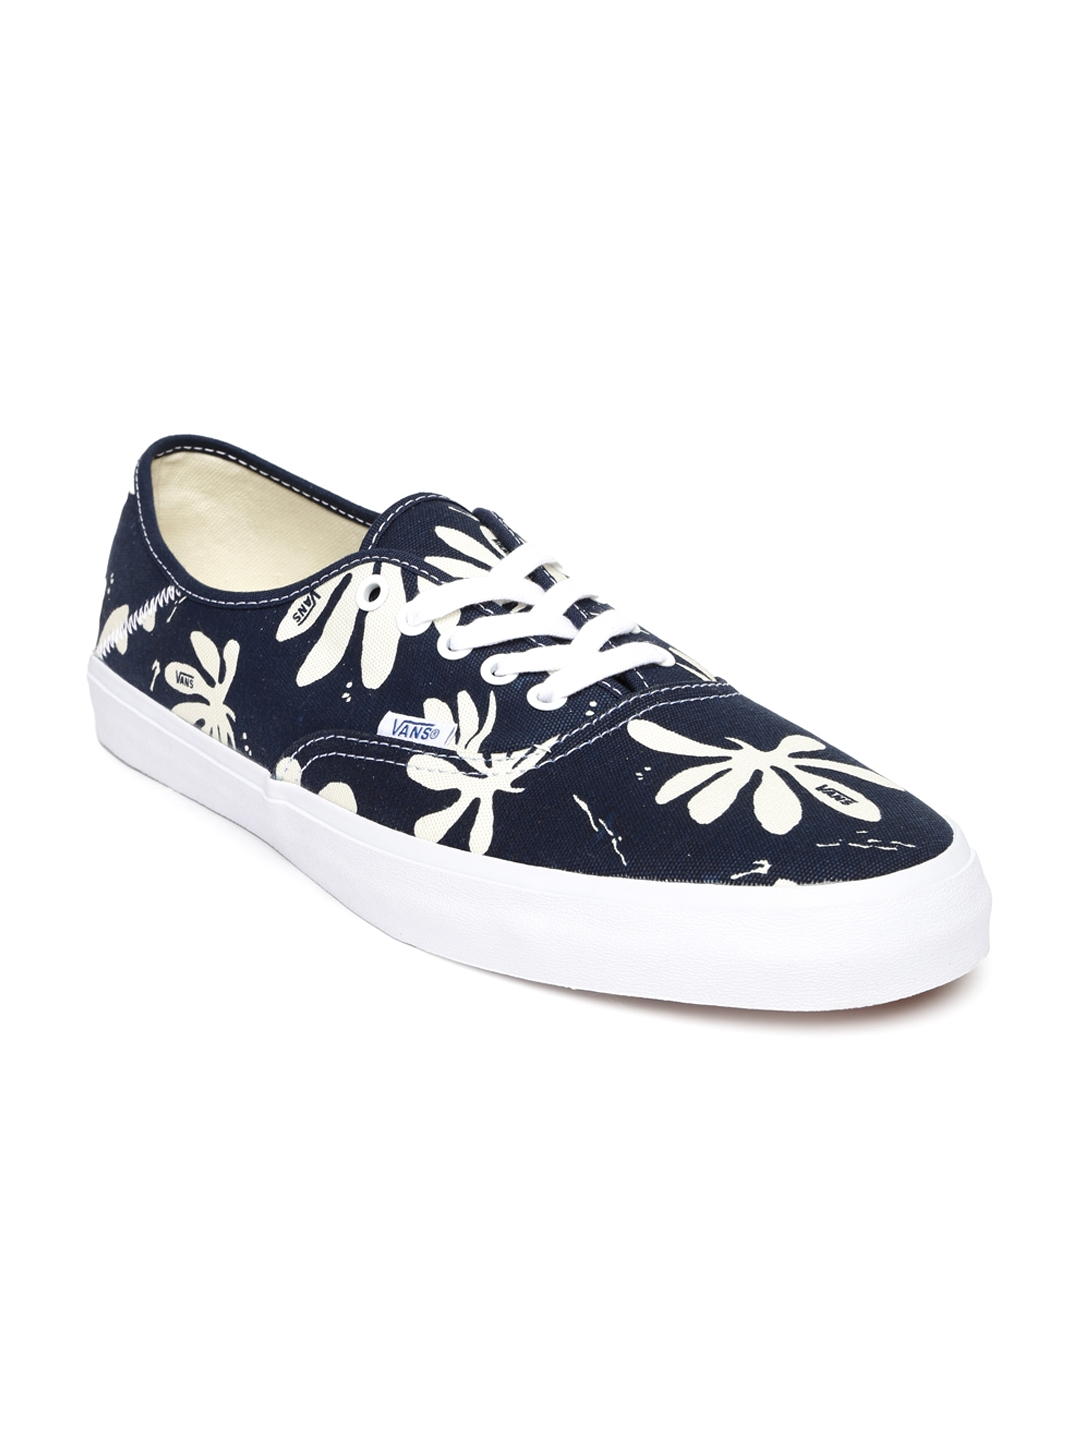 0ff6fbe066 Buy Vans Men Navy   Off White Tropical Print Casual Shoes - Casual ...